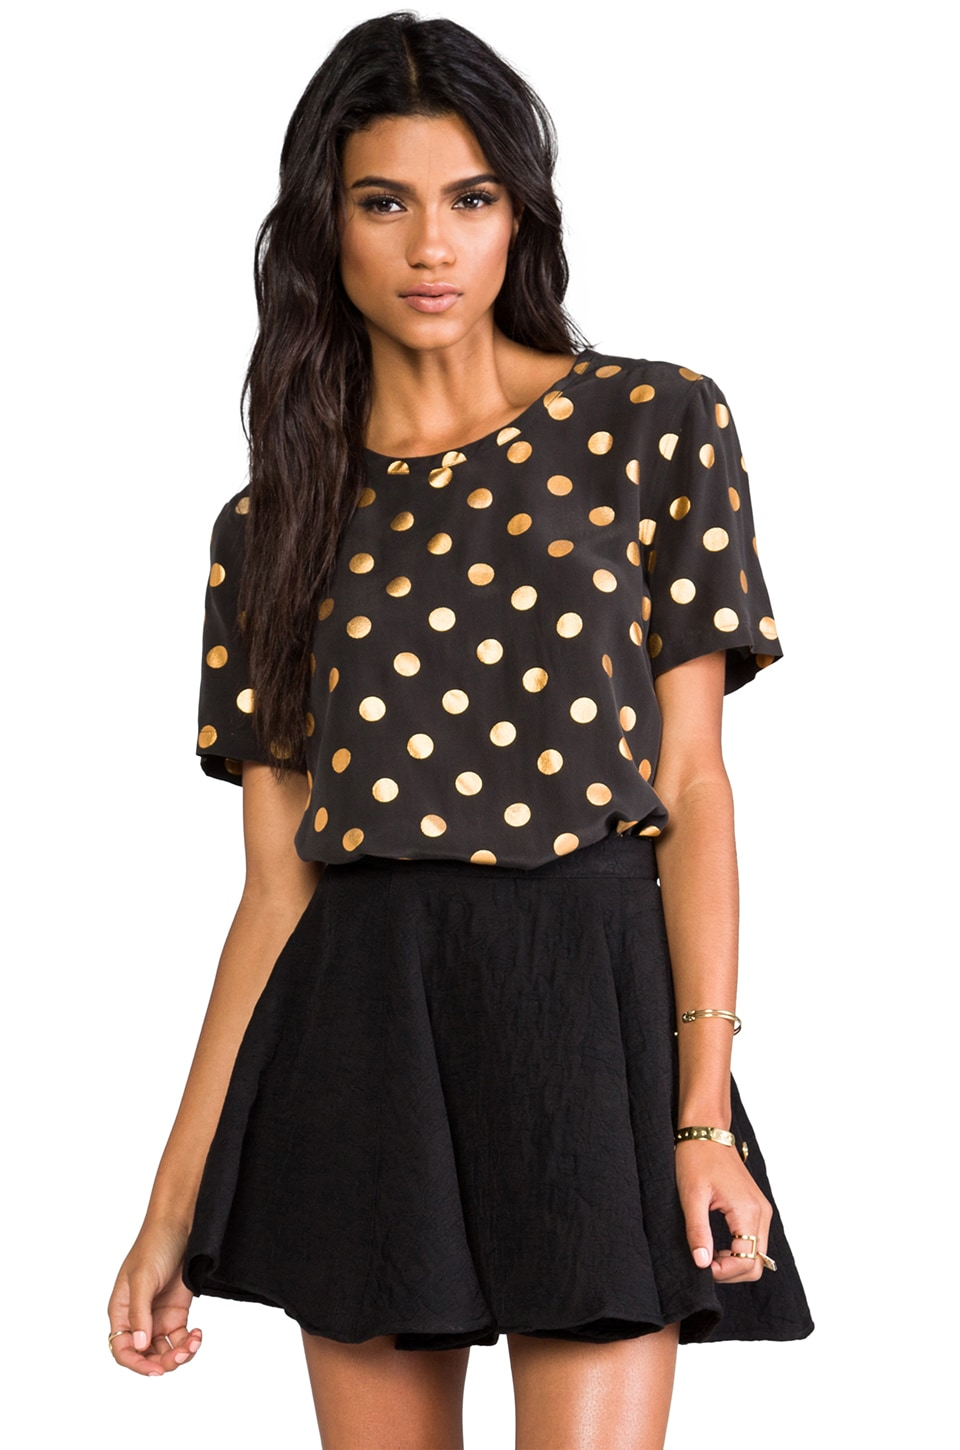 Equipment Riley Modern Dot Foil Blouse in Black